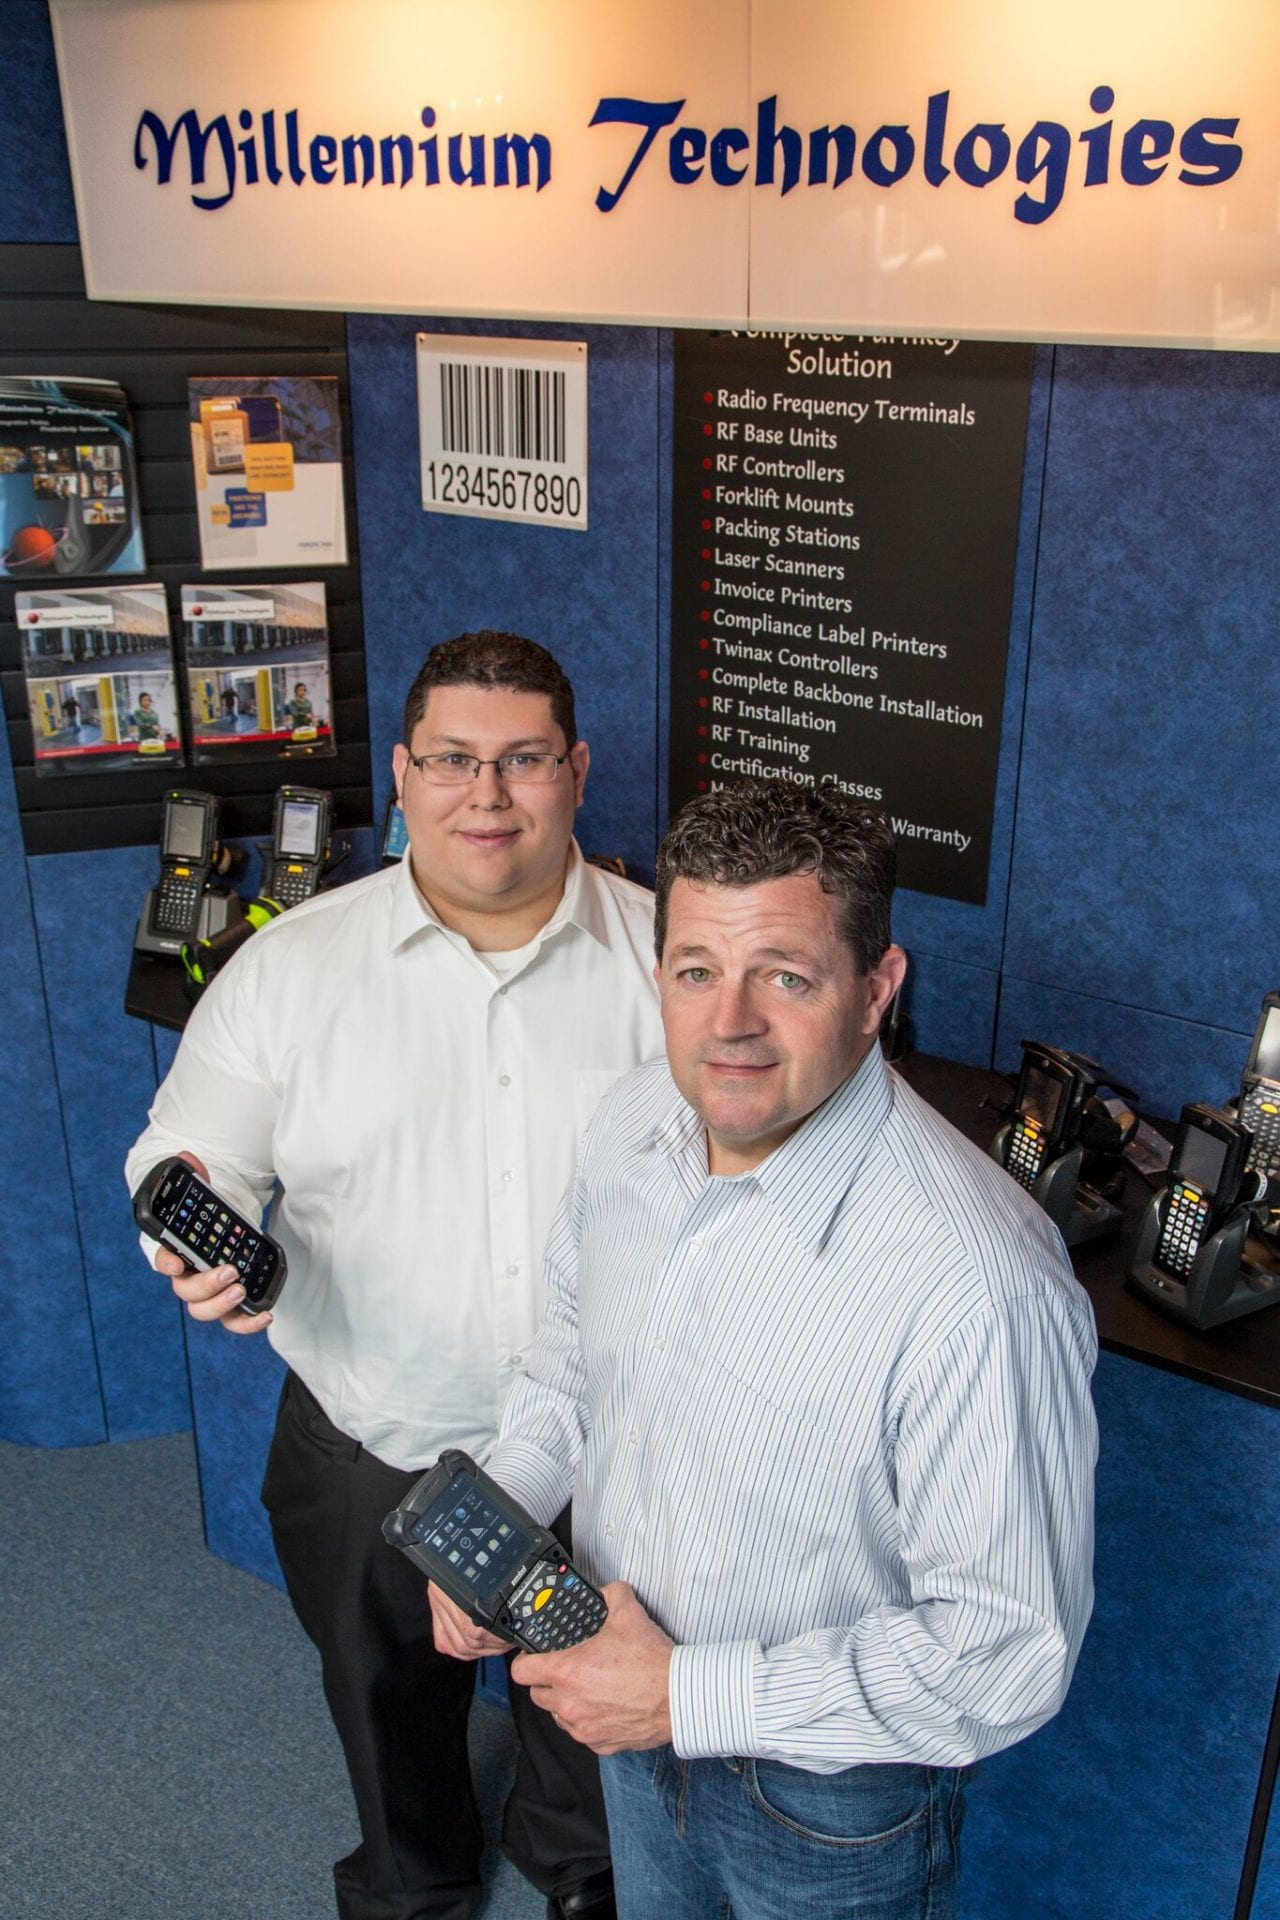 Millennium Technologies Employees holding Mobile Computers and Scanners for Services